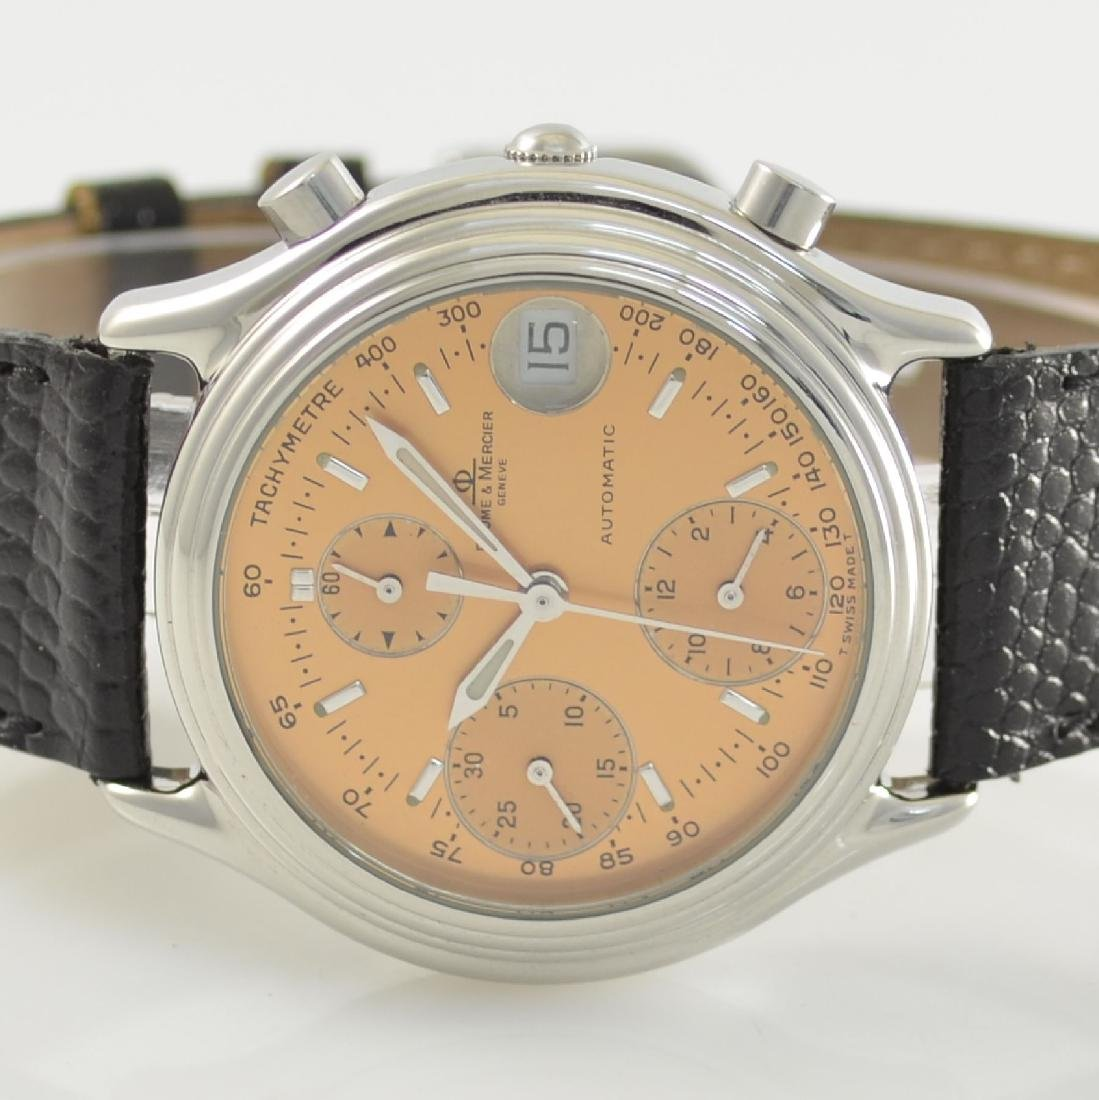 BAUME & MERCIER gents wristwatch with chronograph - 2